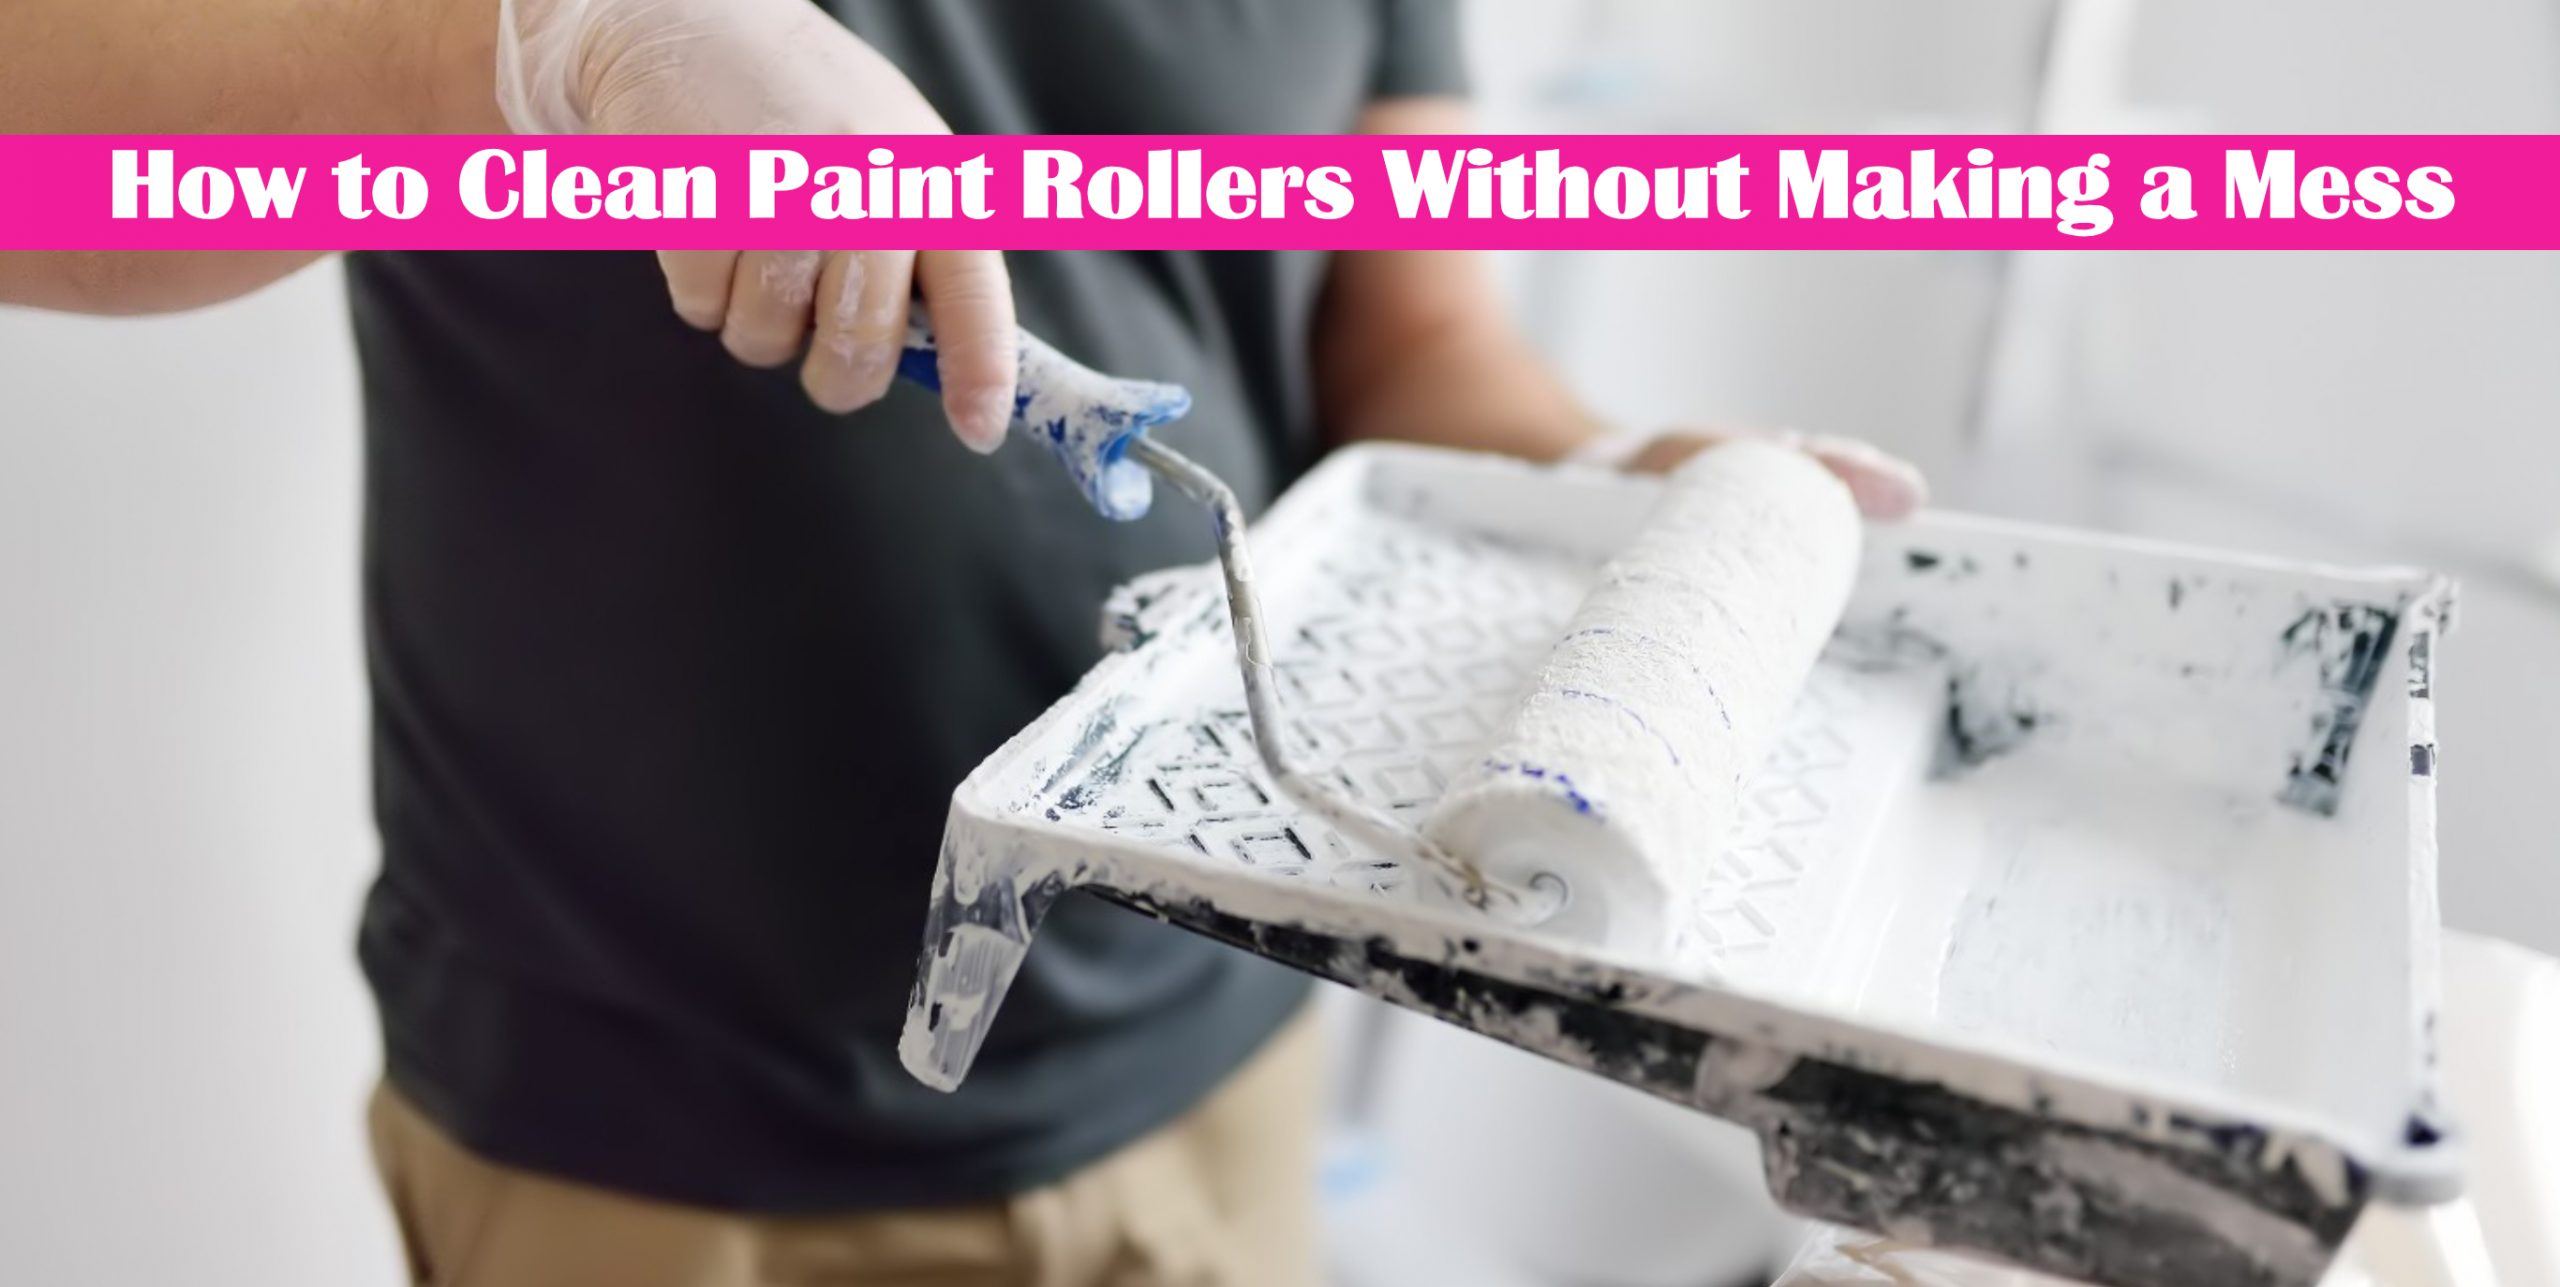 How to Clean Paint Rollers Without Making a Mess